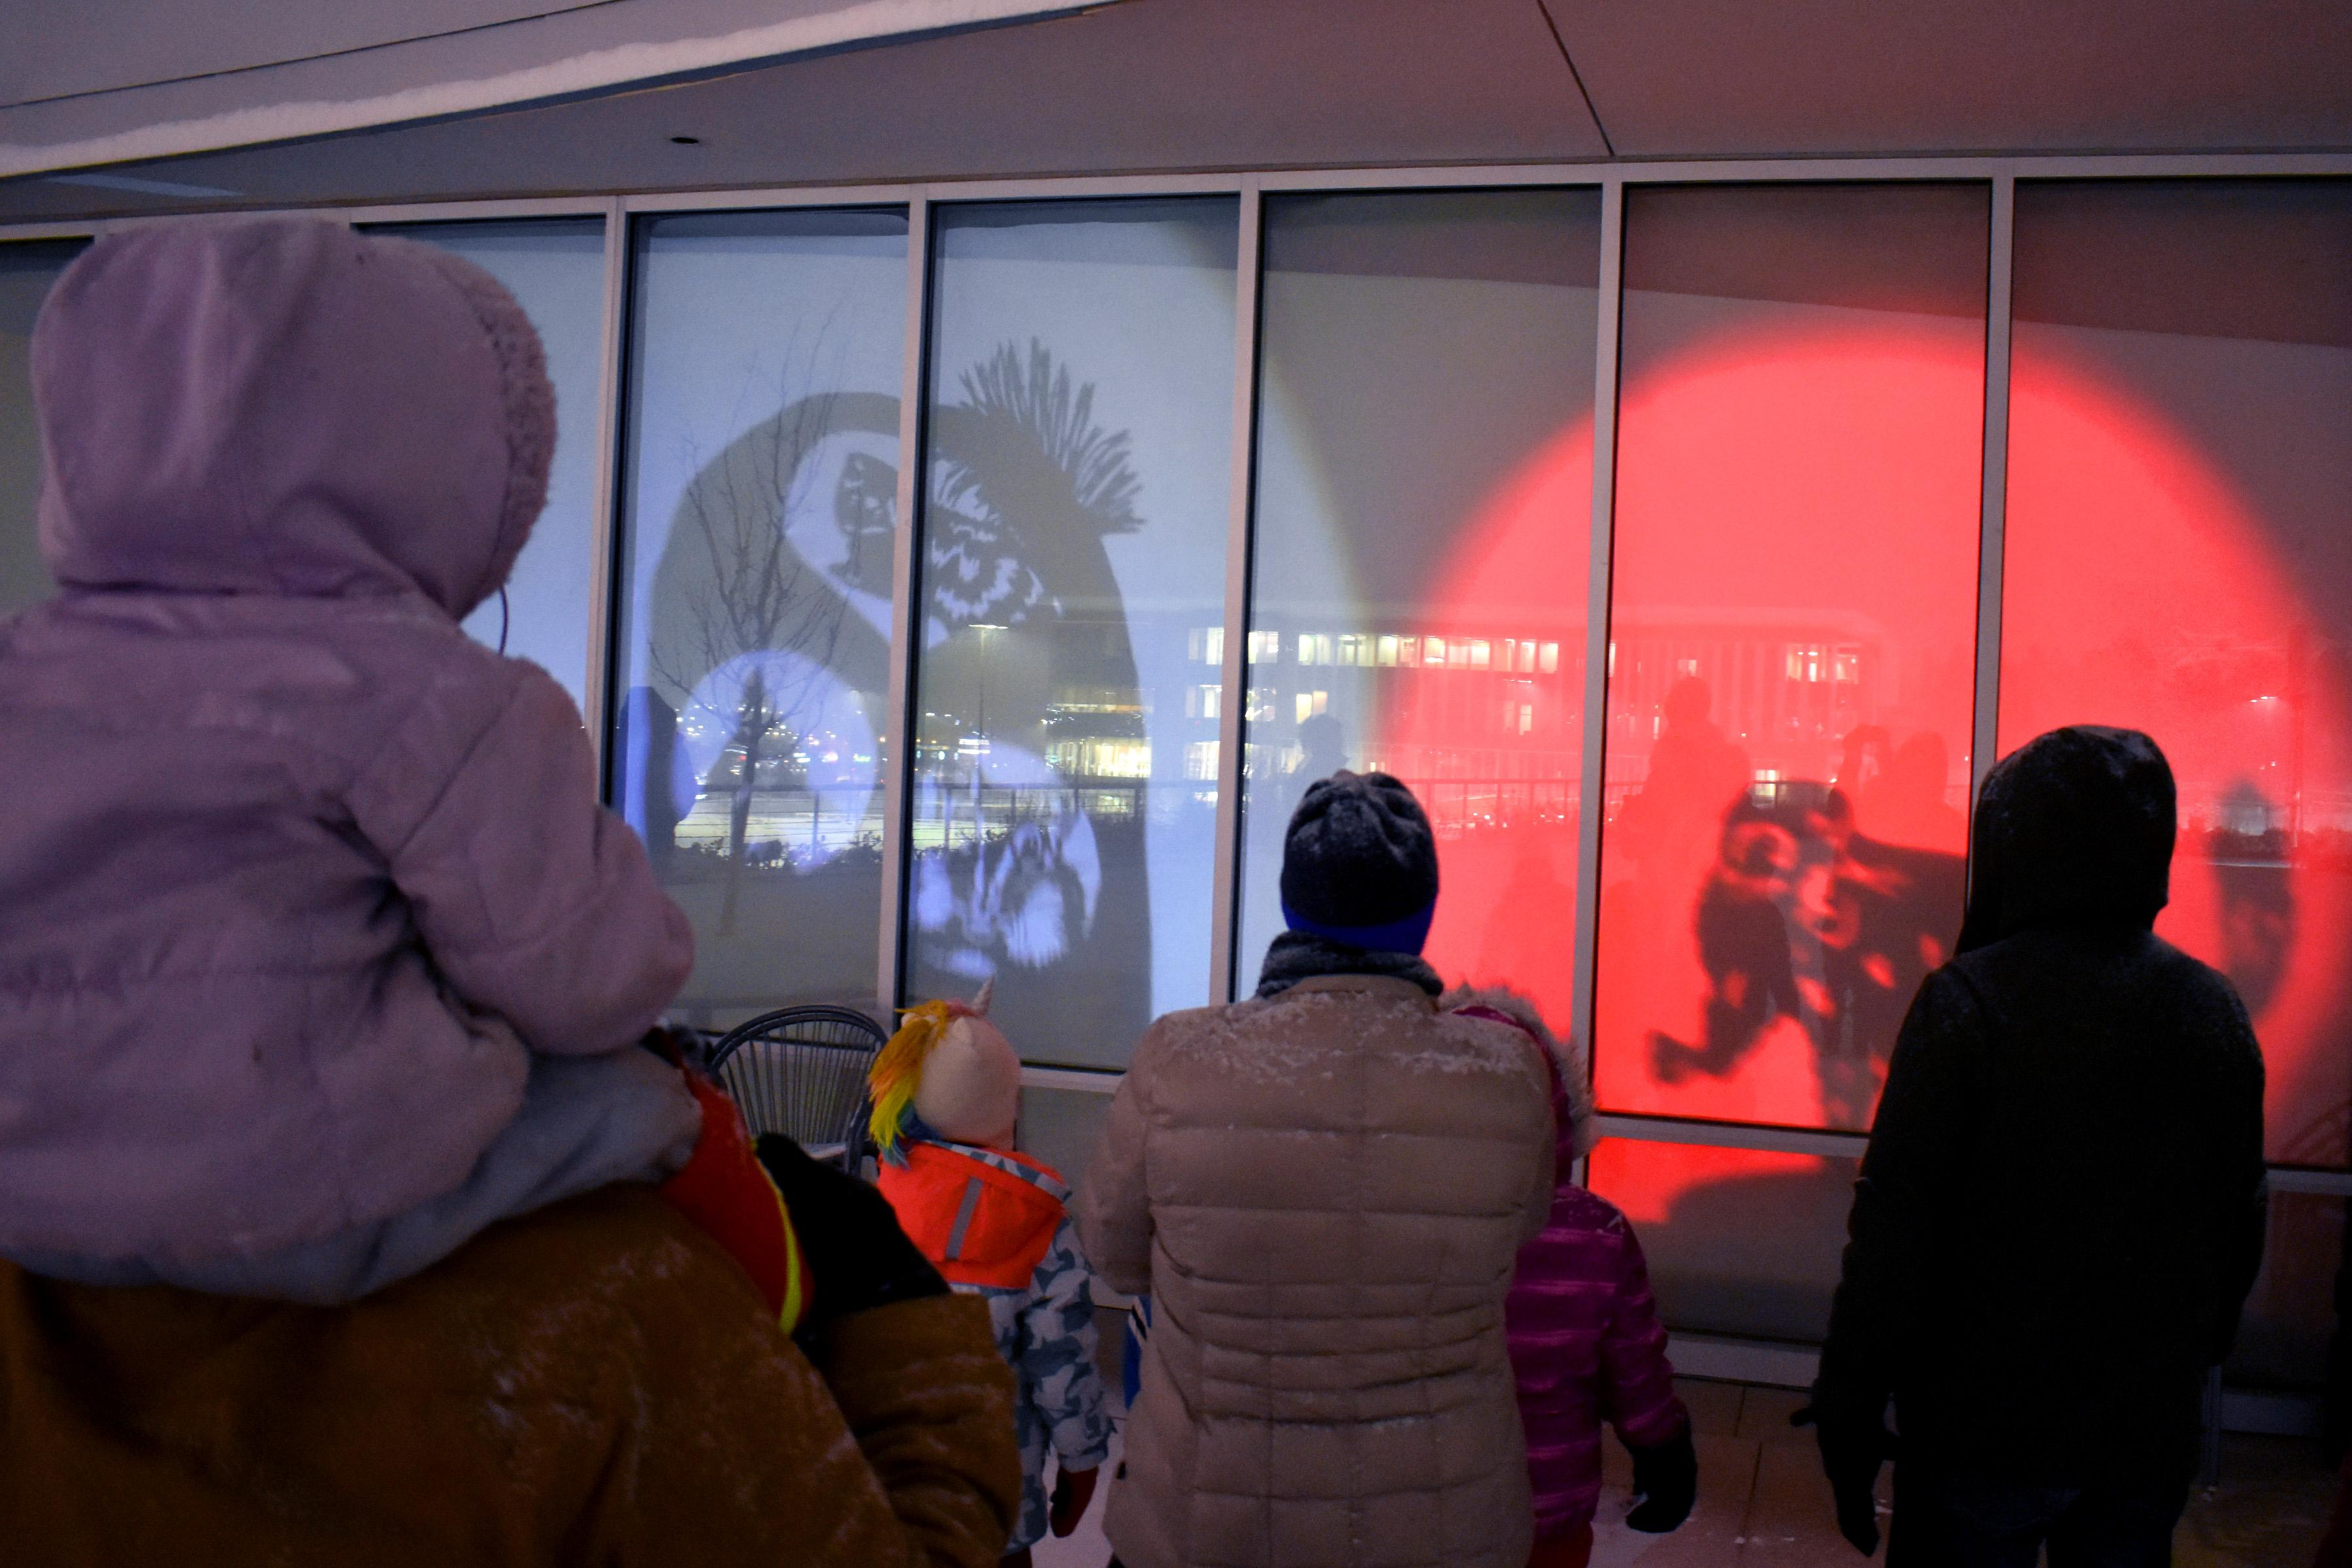 People watch as shadow puppets are displayed on the window.